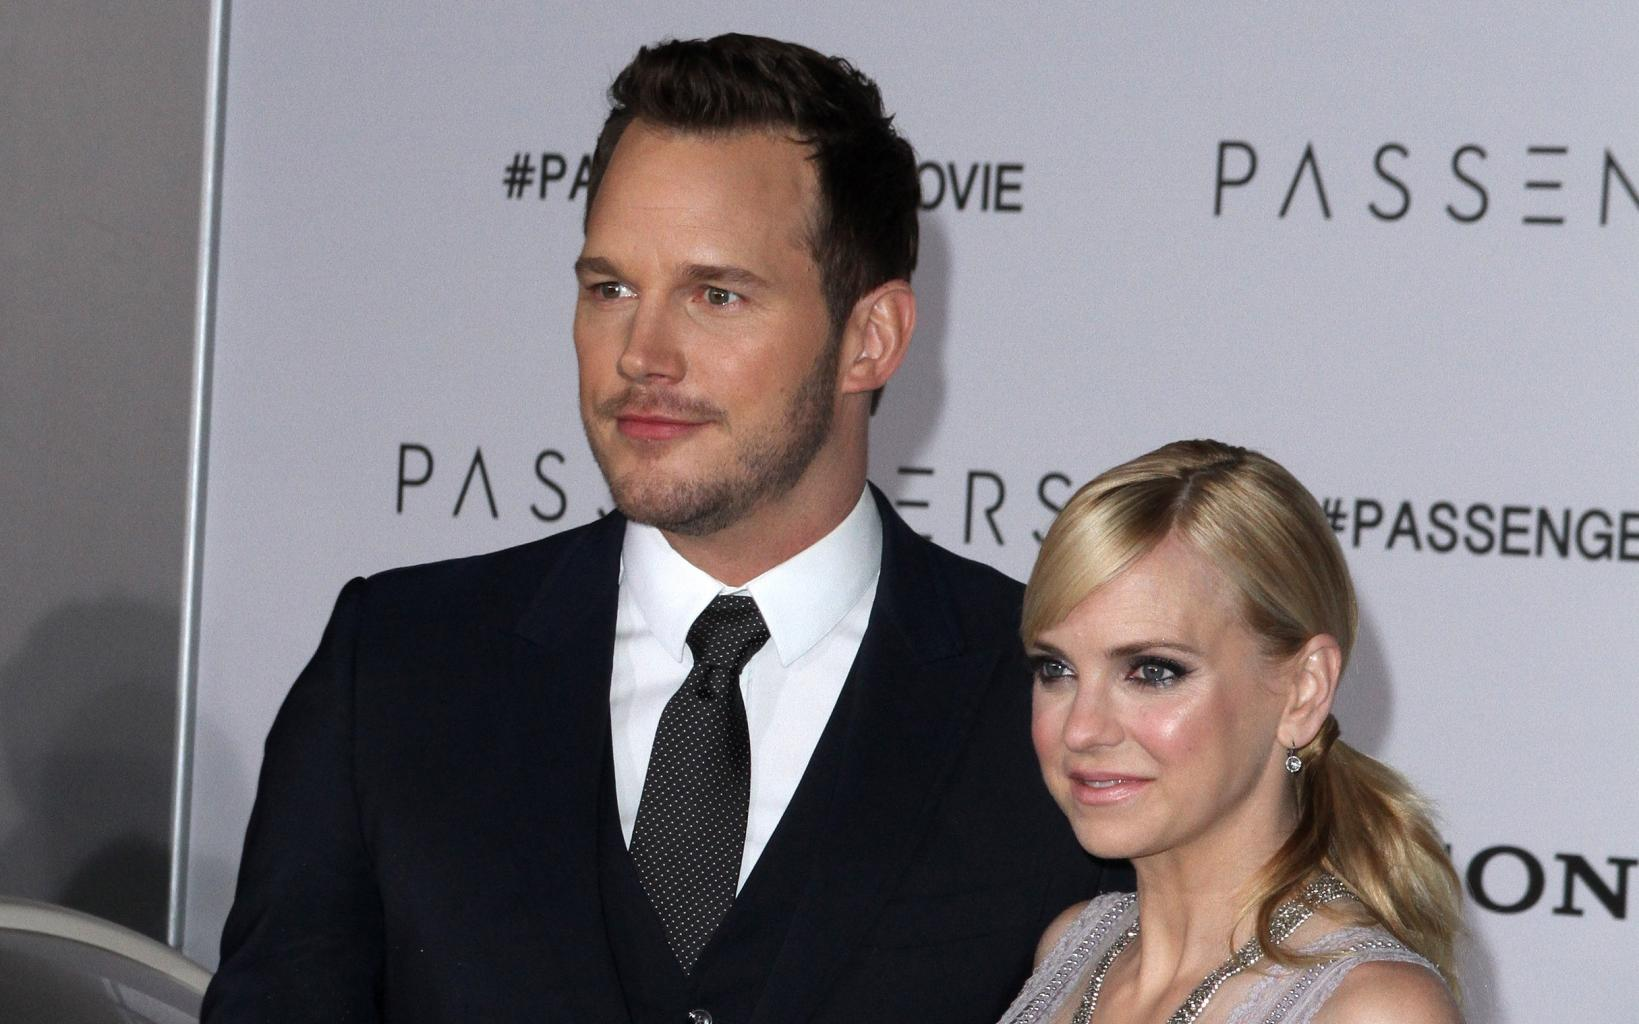 Anna Faris Marvels At Chris Pratt At        Gotg 2      '  Premiere:        I        ve Always Known He       's A Brilliant Actor